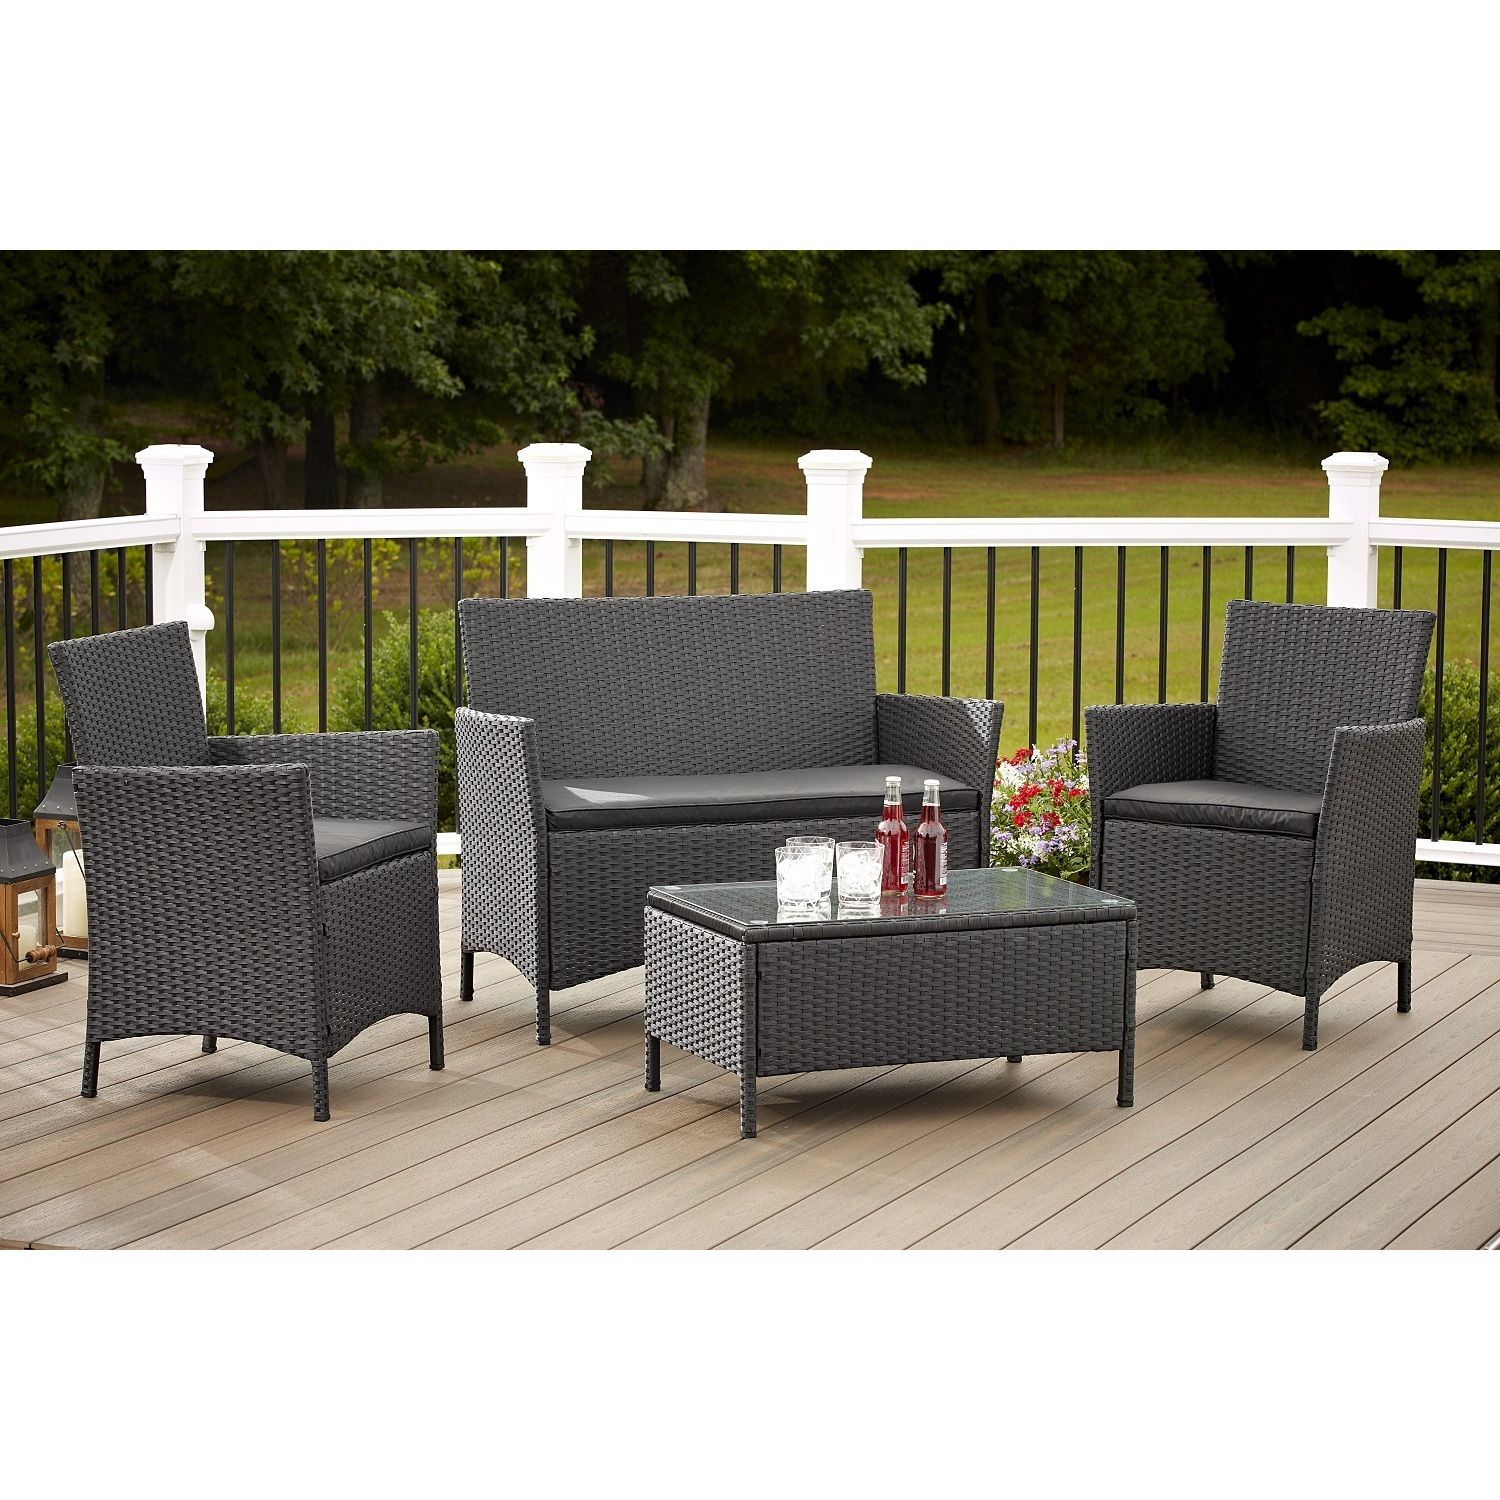 i found a wilson u0026 fisher palermo patio furniture collection at big lots for less find more products at biglotscom